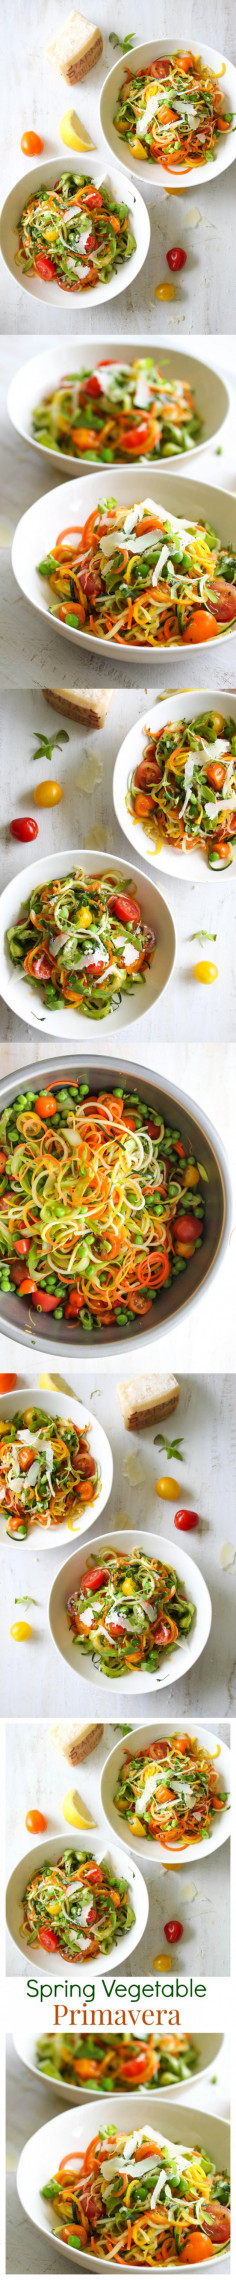 Spring Vegetable Primavera | Dishing Out Health